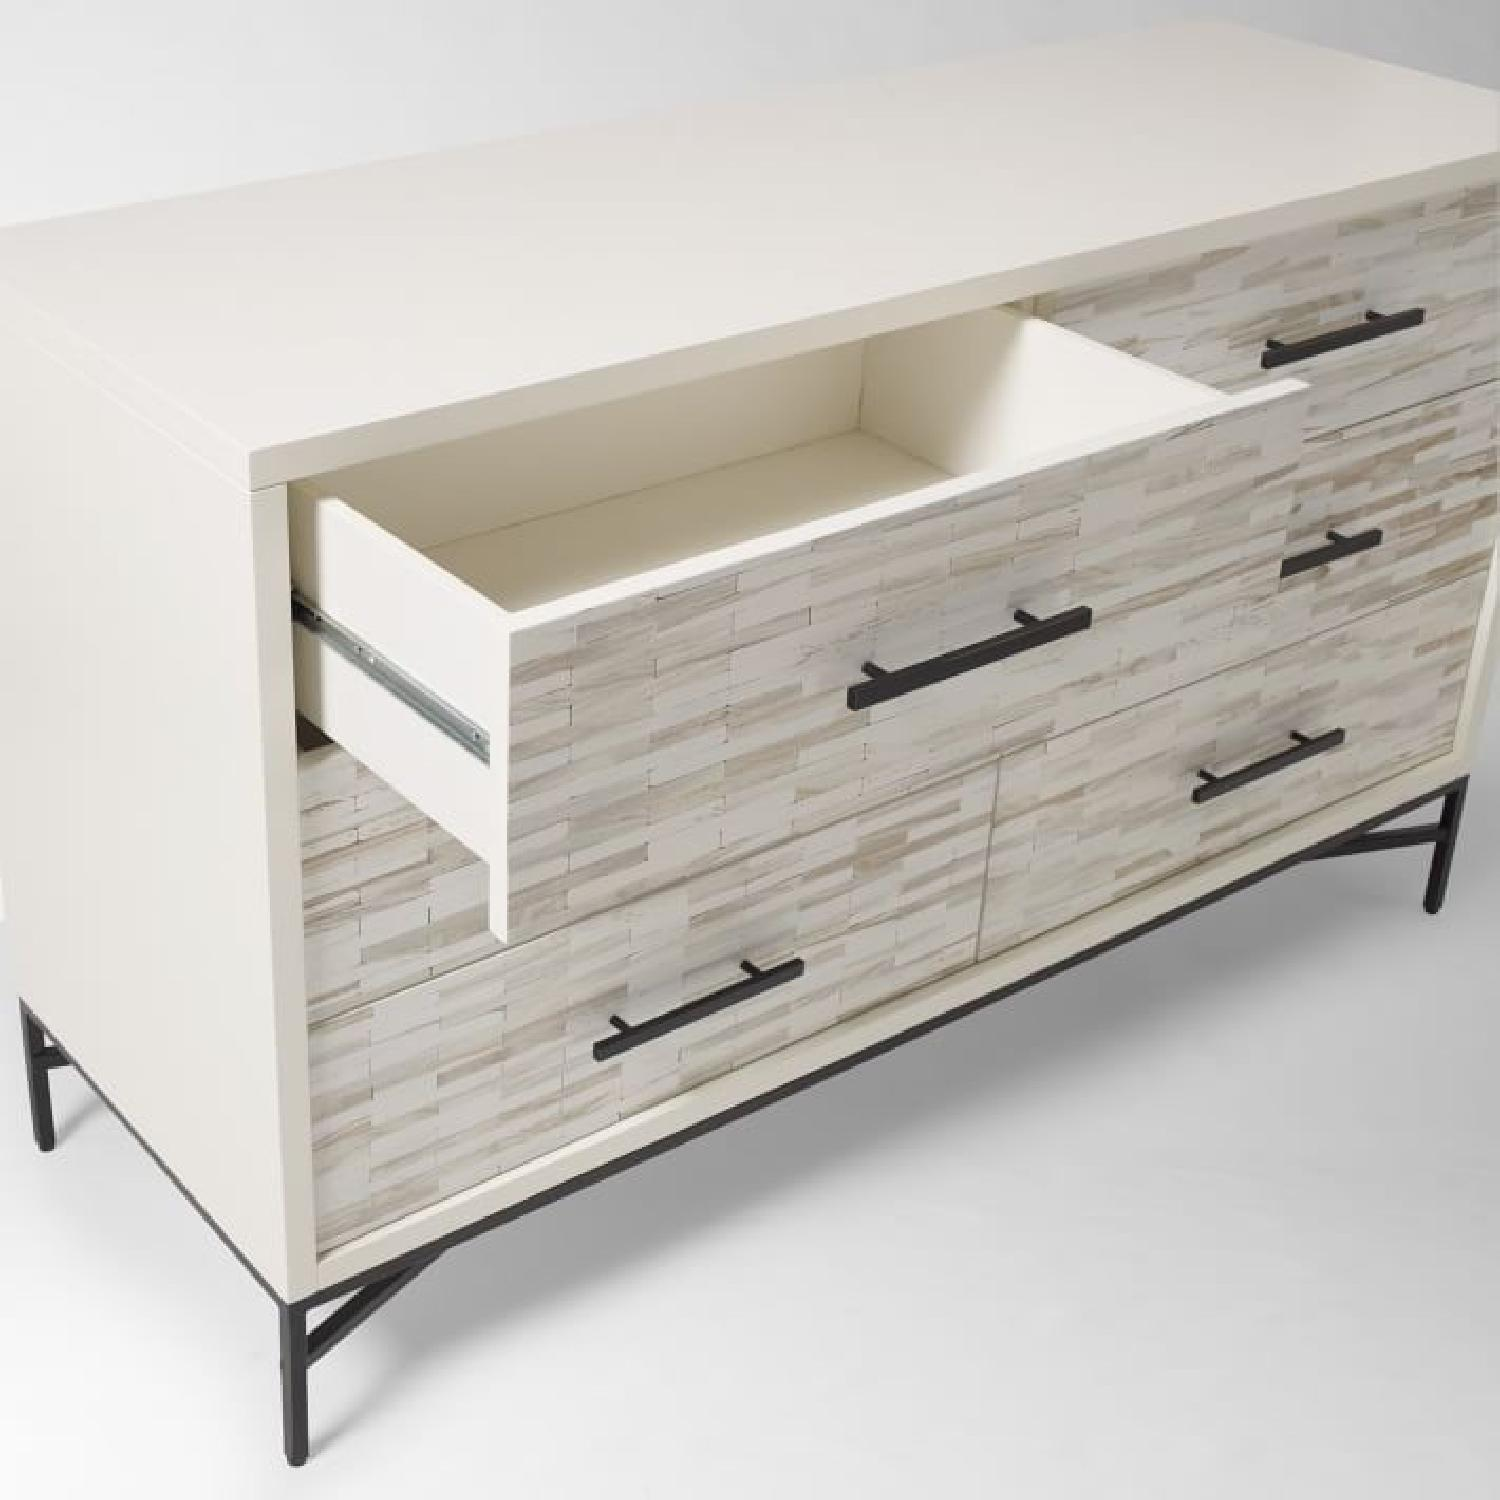 West Elm Wood Tiled 6-Drawer Dresser in Whitewash-2